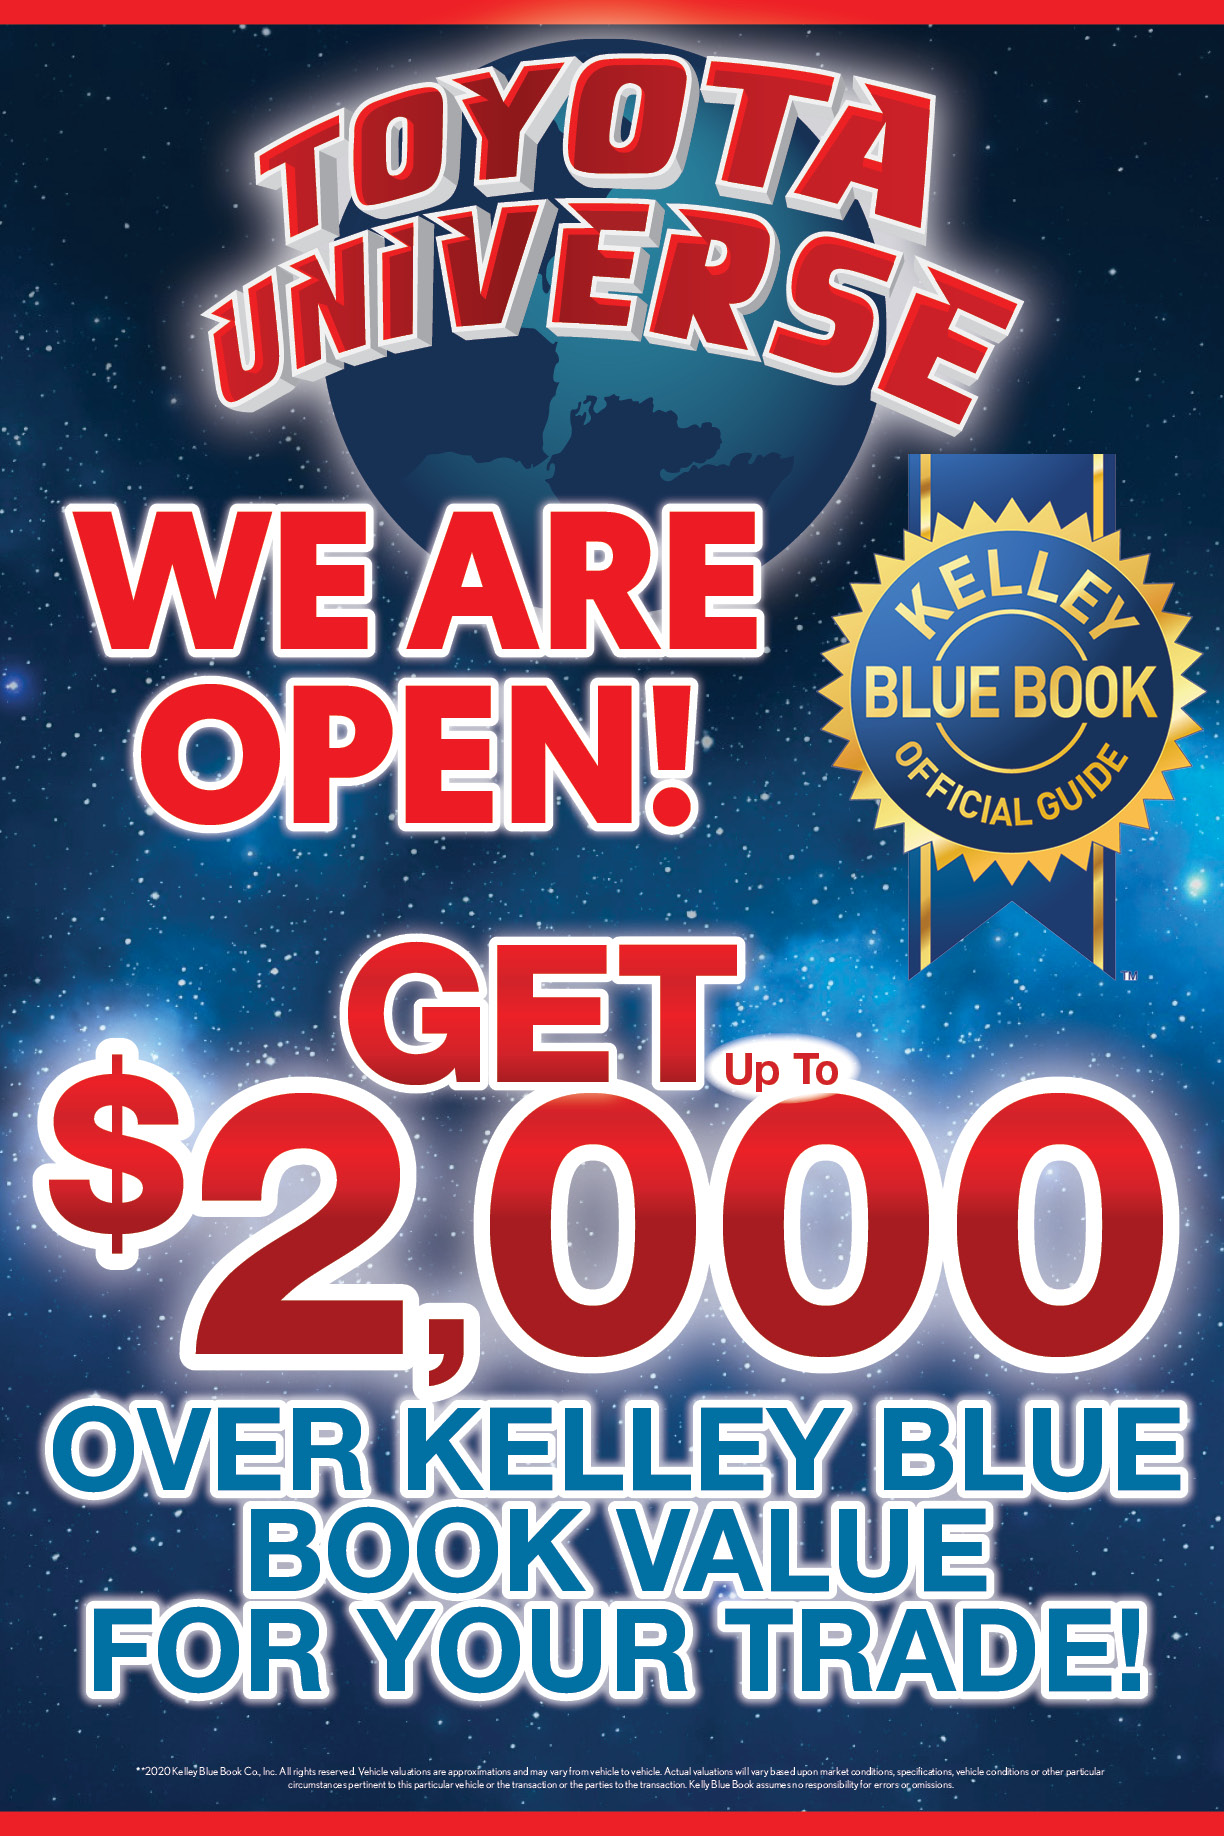 Kelley Blue Book Up To 2000 Over For Your Trade Toyota Universe